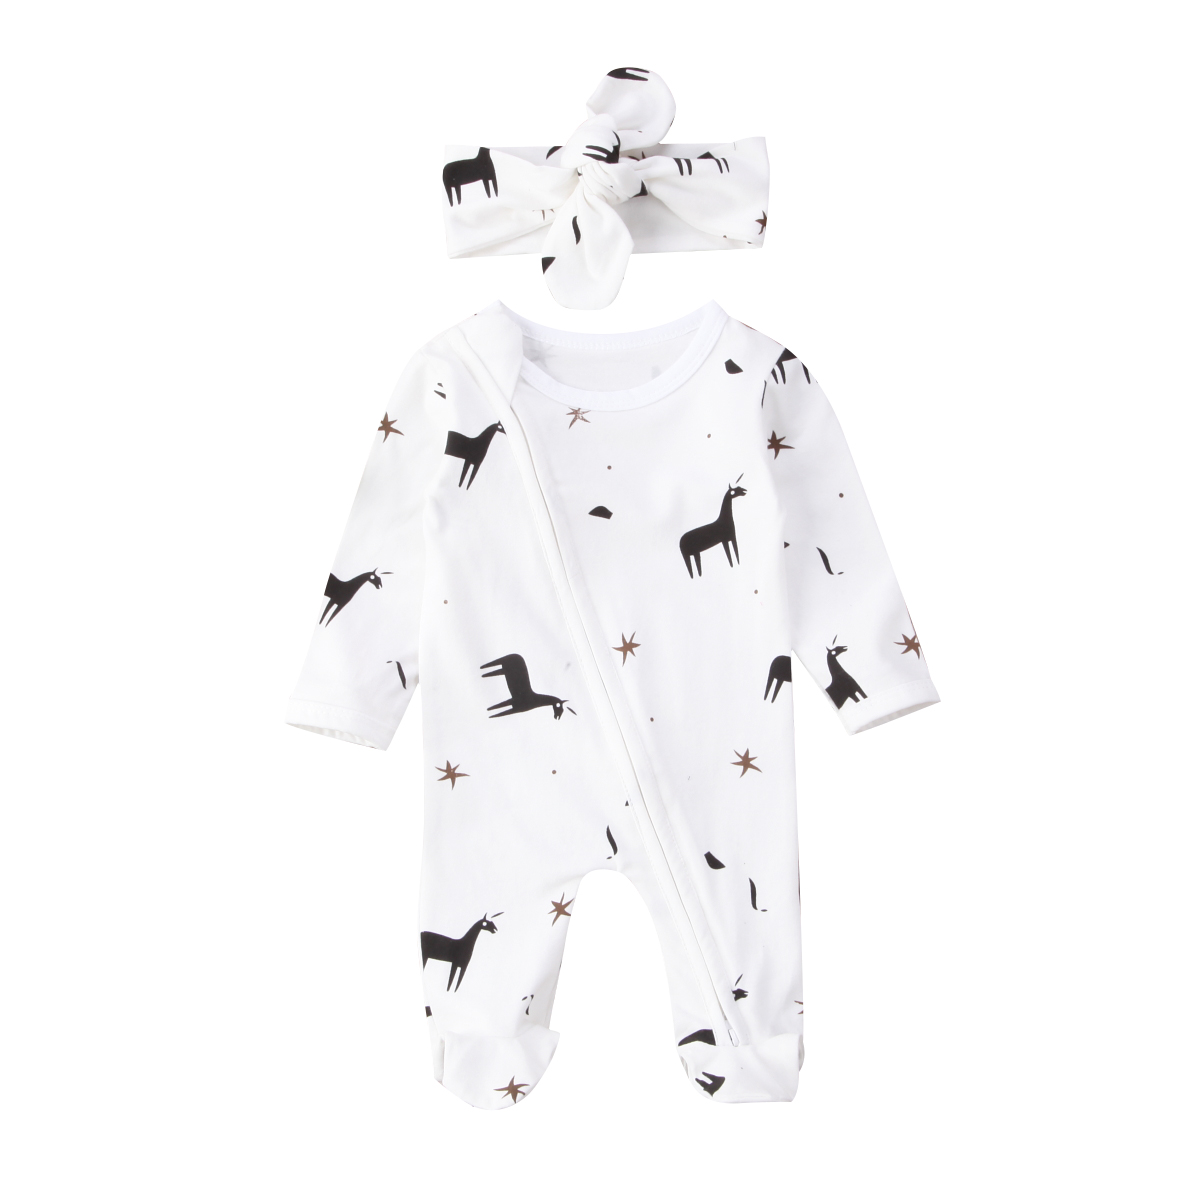 Adopt Rescue Dogs and Cats Baby Newborn Crawling Clothes Sleeveless Rompers Romper Jumpsuit Black